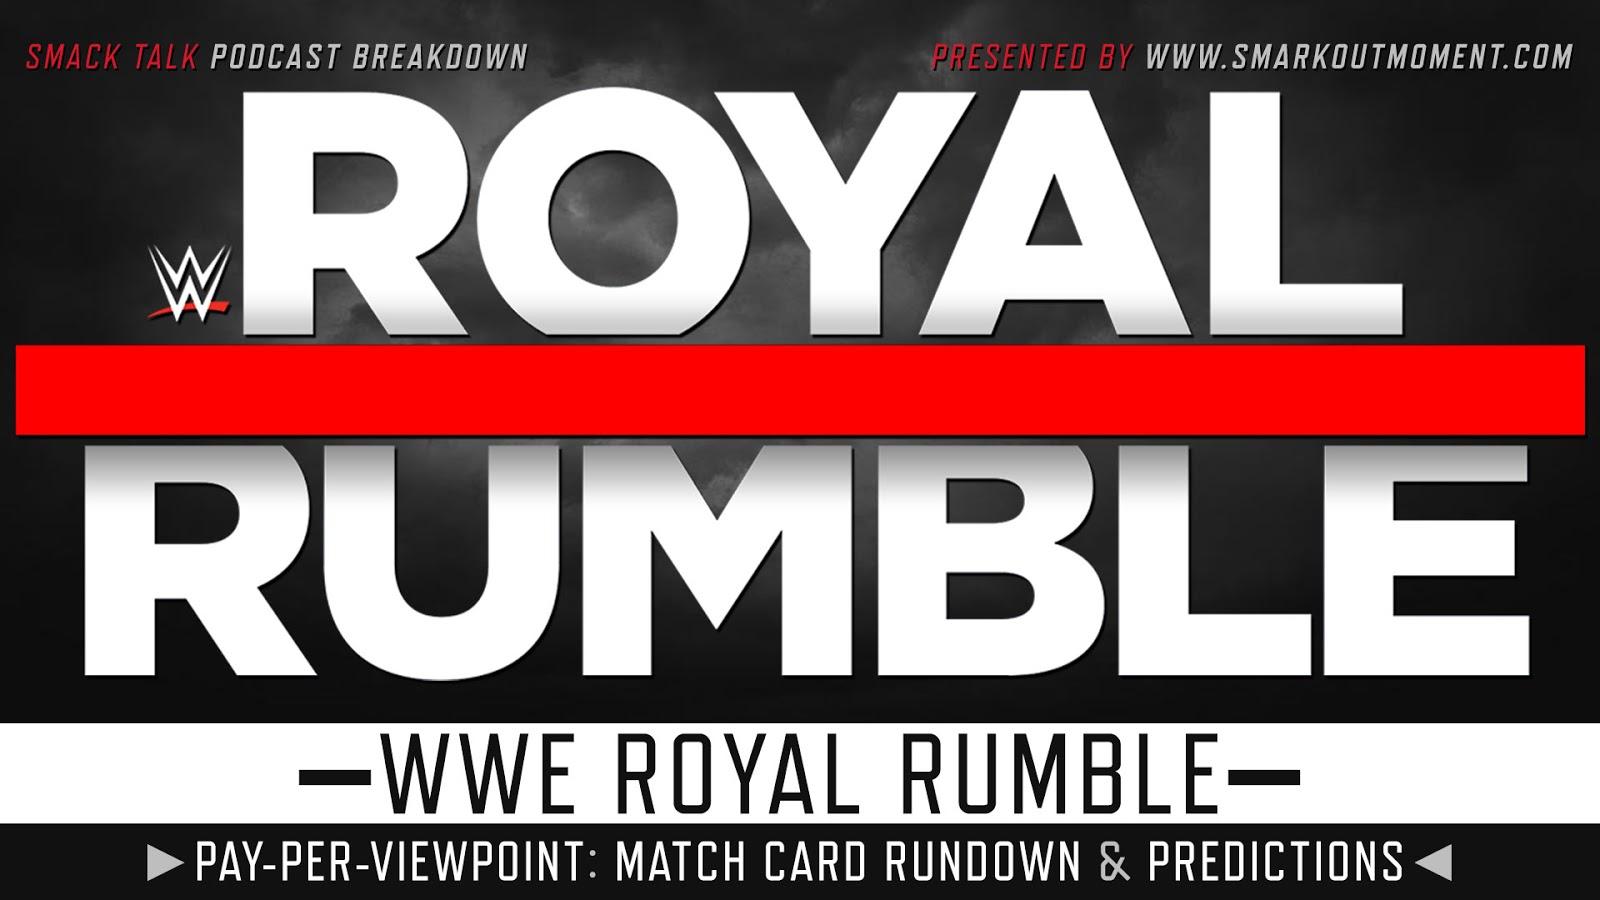 WWE Royal Rumble 2020 spoilers podcast